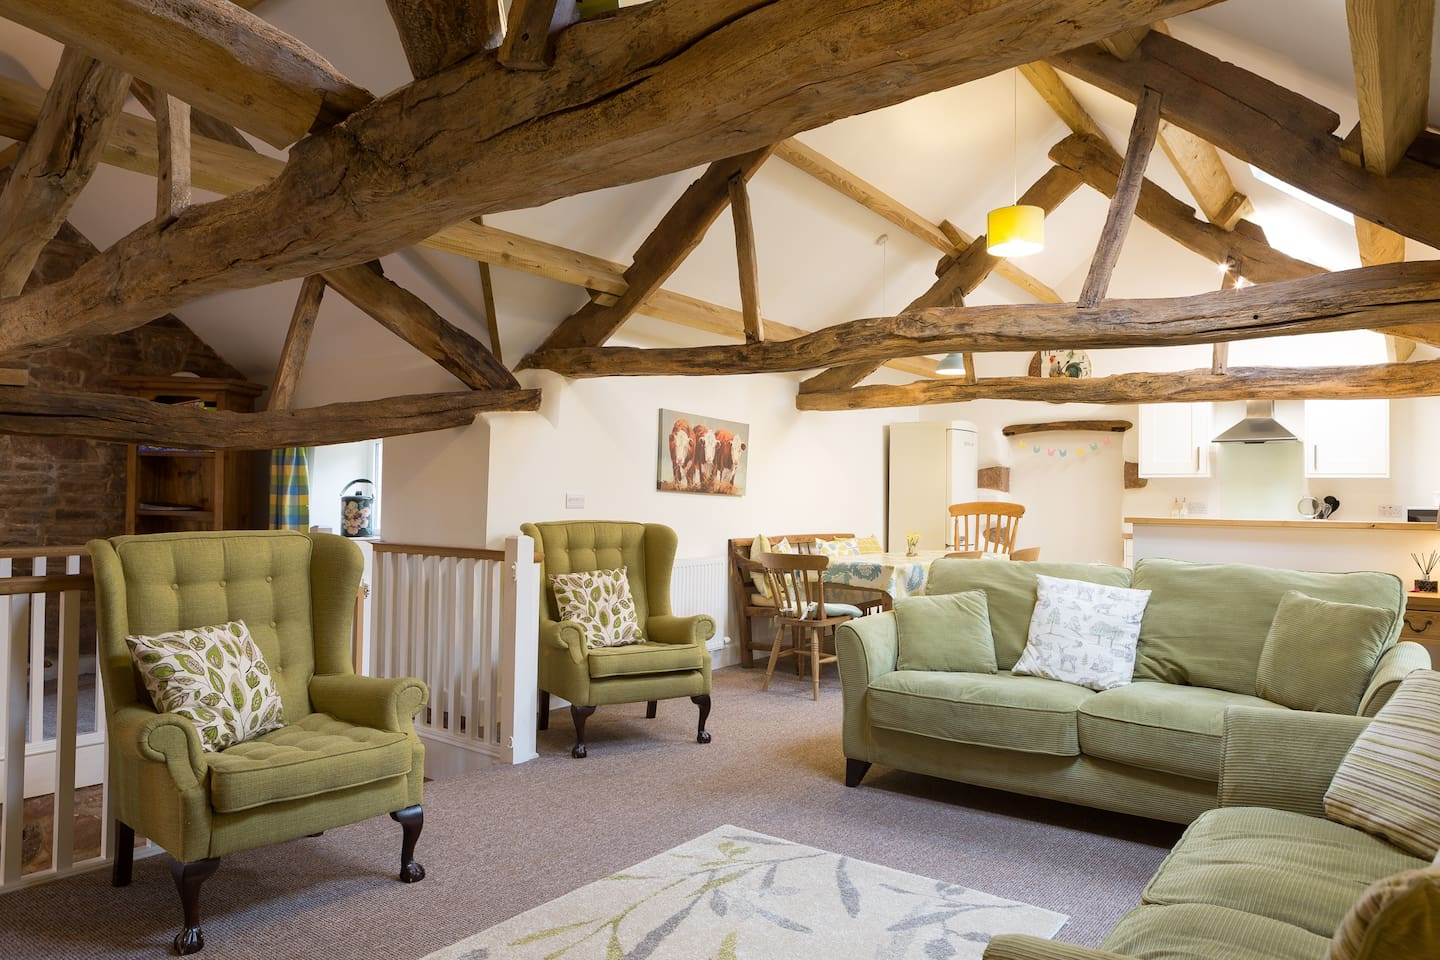 The amazing open plan barn bursting with character and contemporary country style.